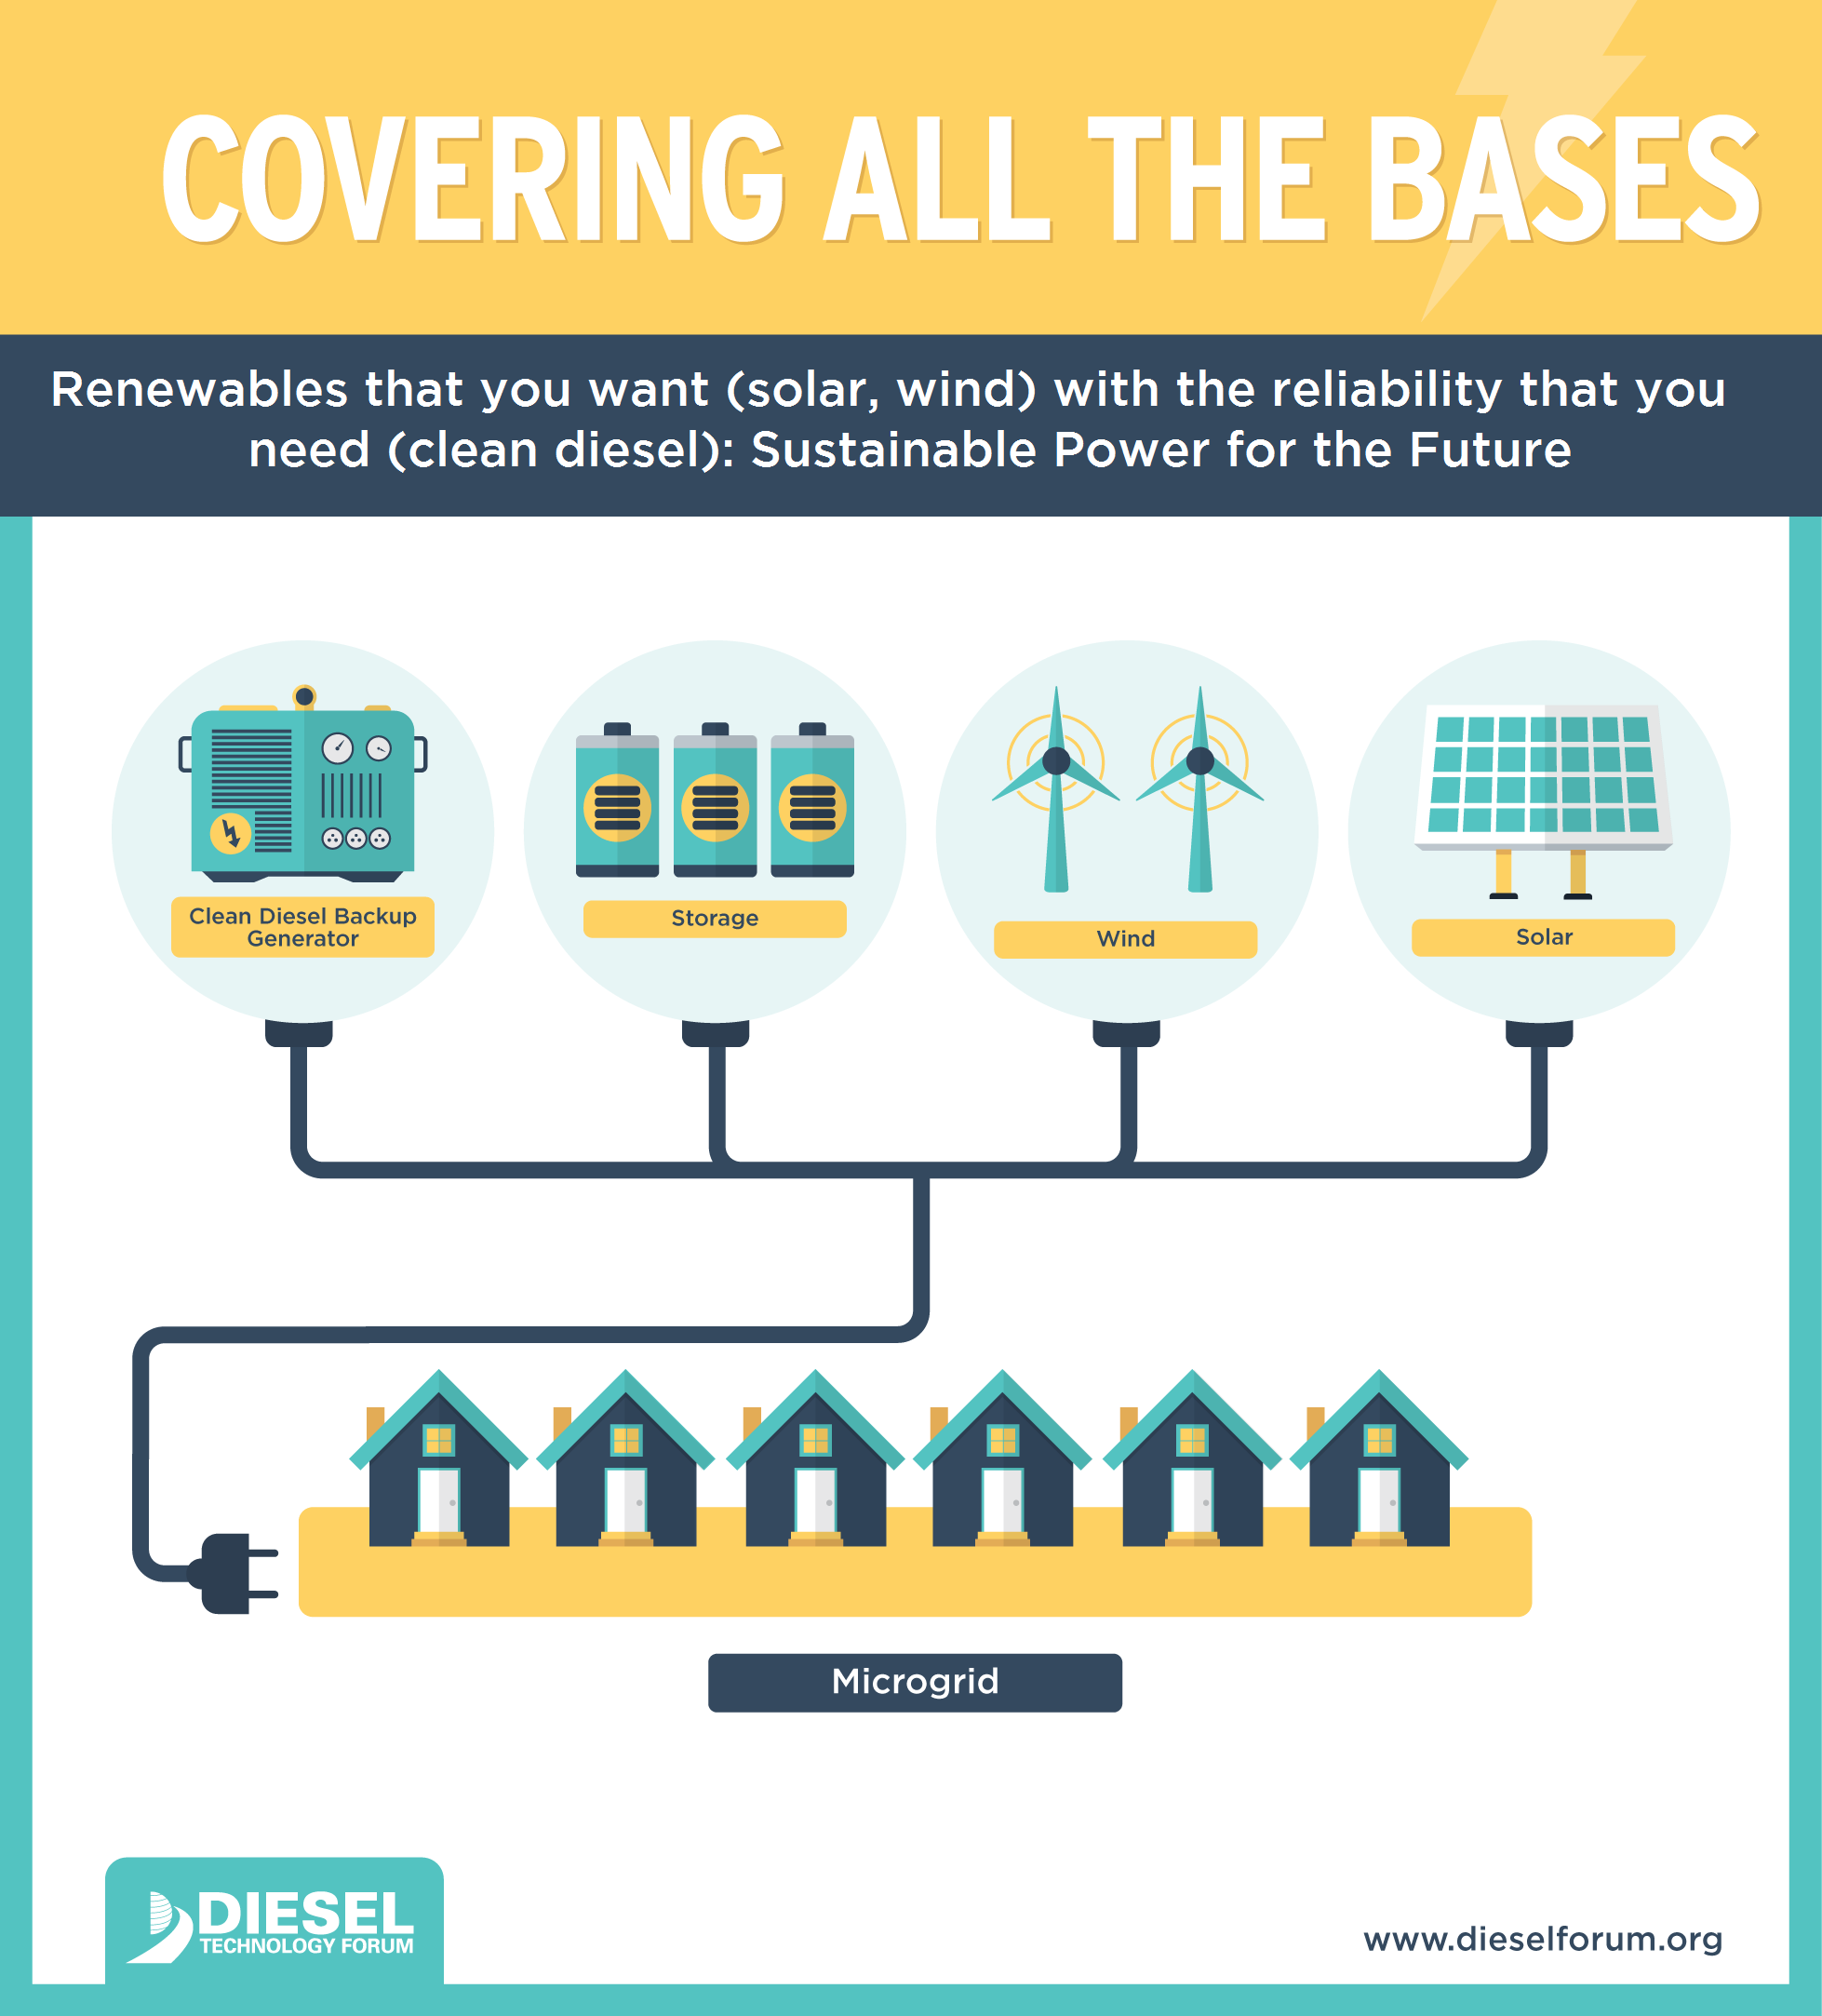 Covering all the Bases in Power Generation